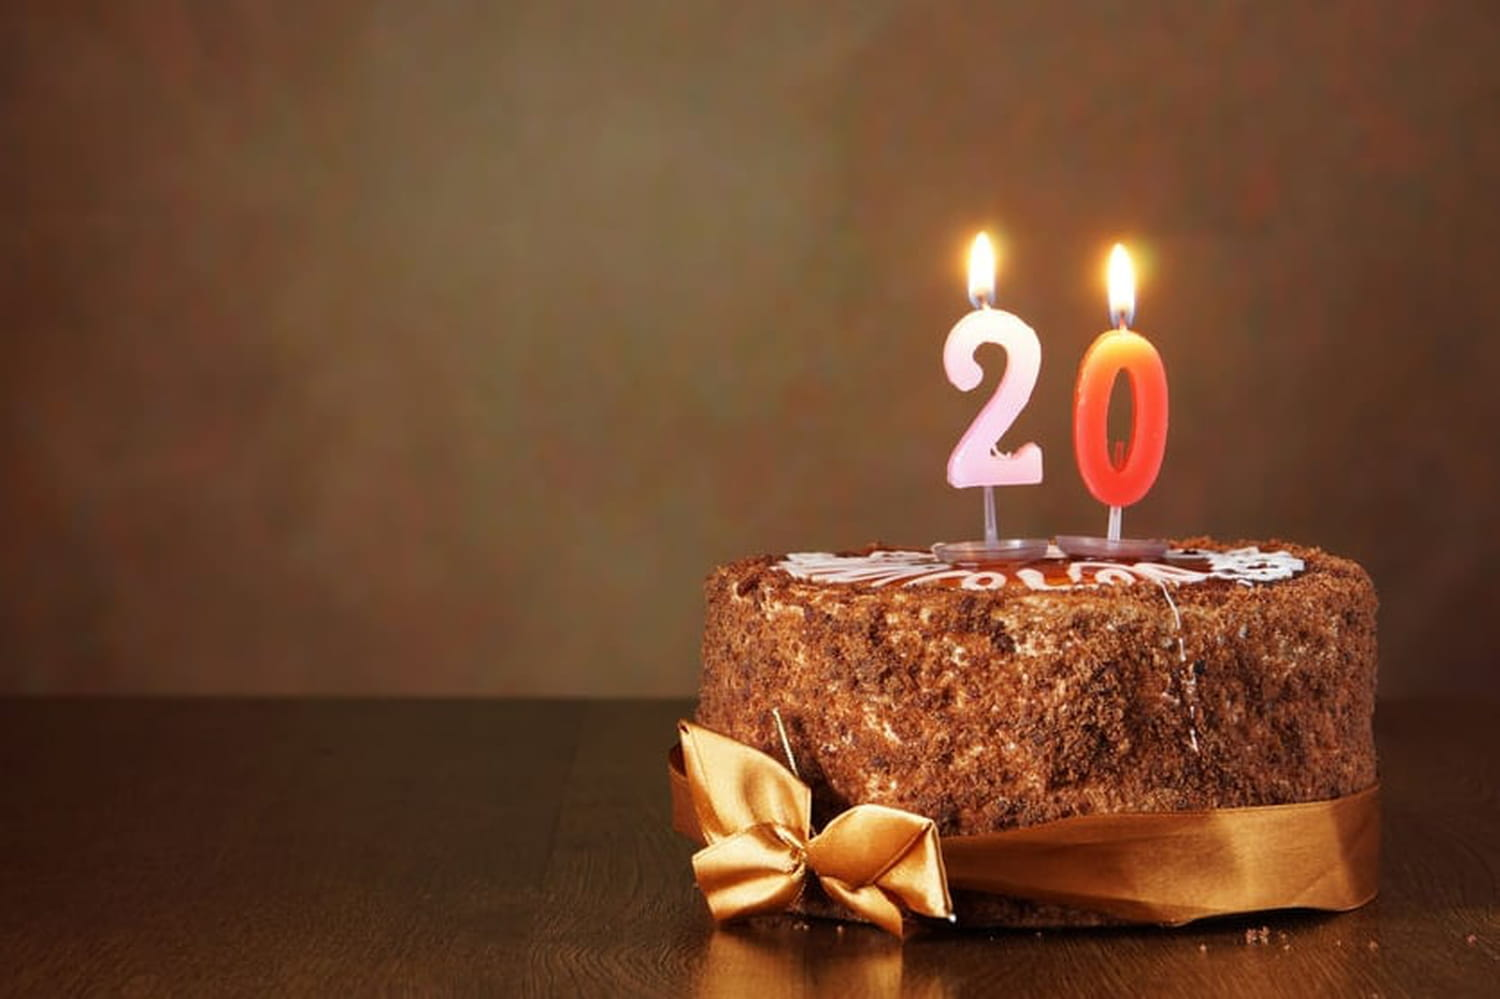 20th Short & Long Birthday Wishes - Greetings - Messages